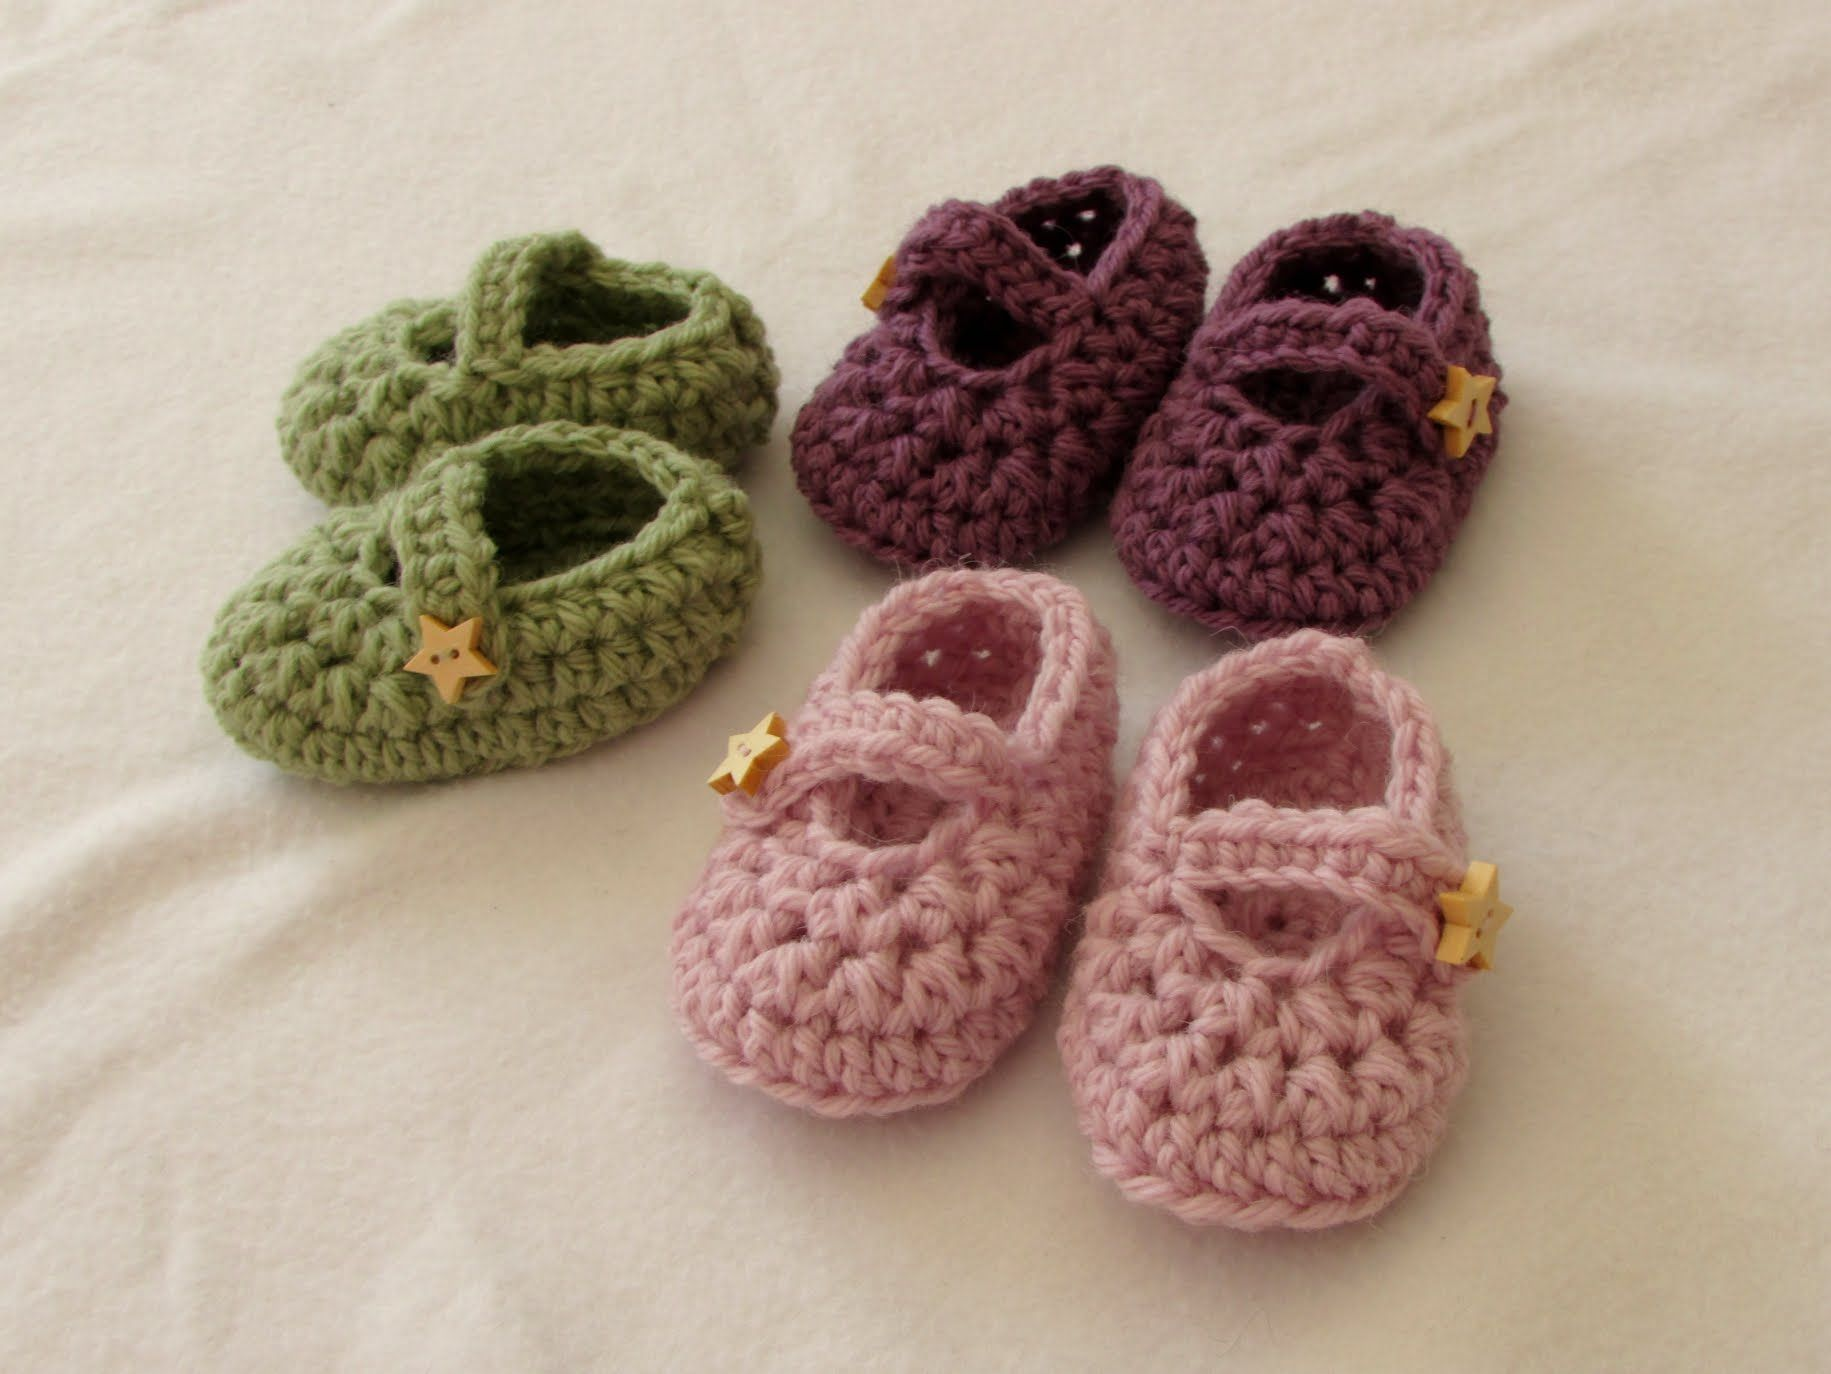 How to crochet easy baby mary jane shoes booties slippers for how to crochet easy baby mary jane shoes booties slippers for beginners dt1010fo